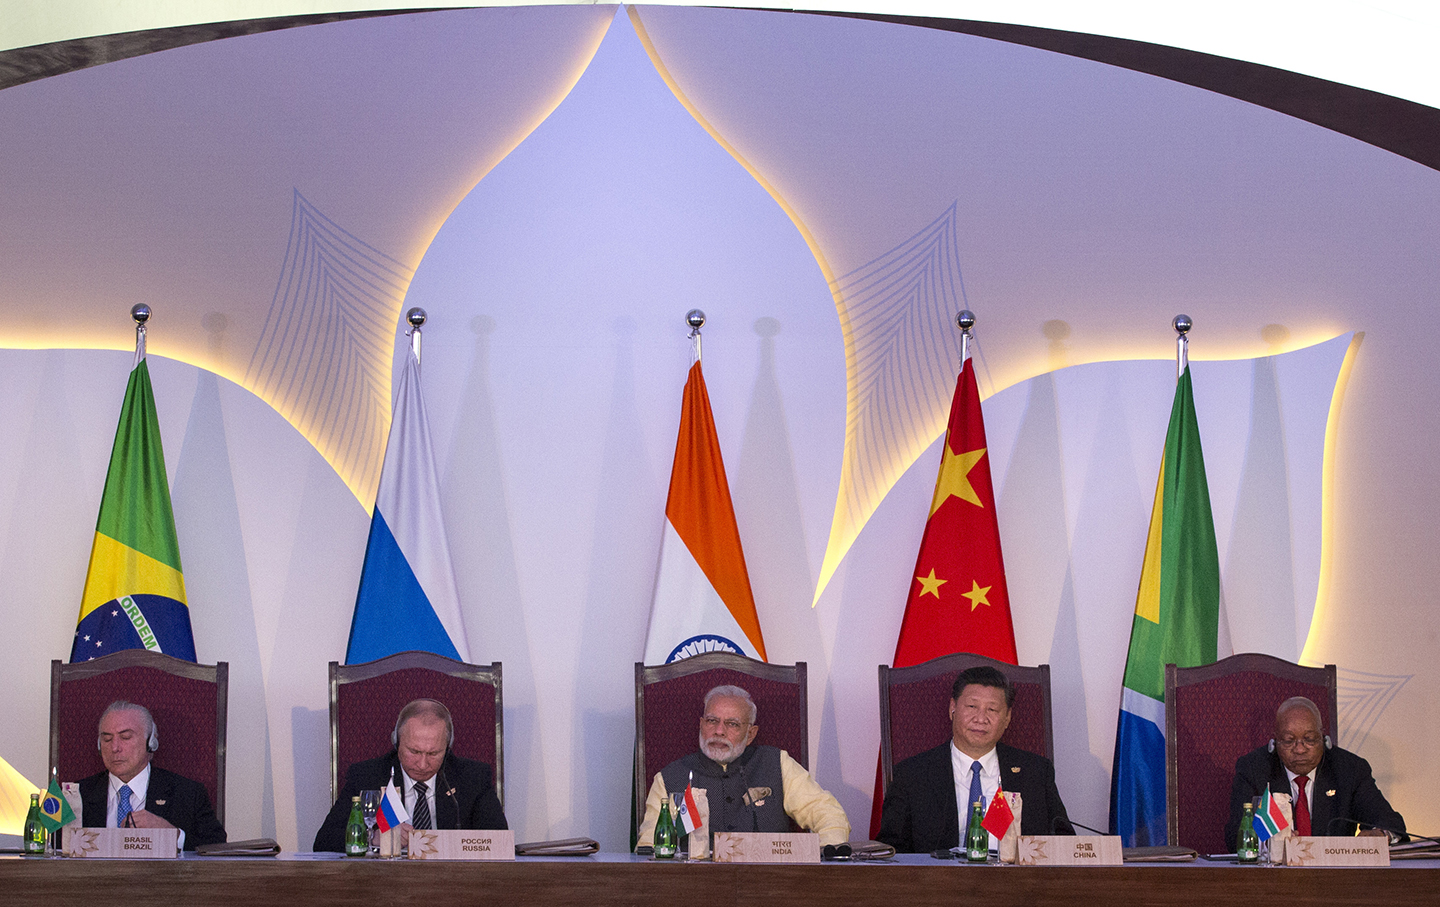 https://www.thenation.com/wp-content/uploads/2017/01/Lawrence_BRICS_AP_img.jpg